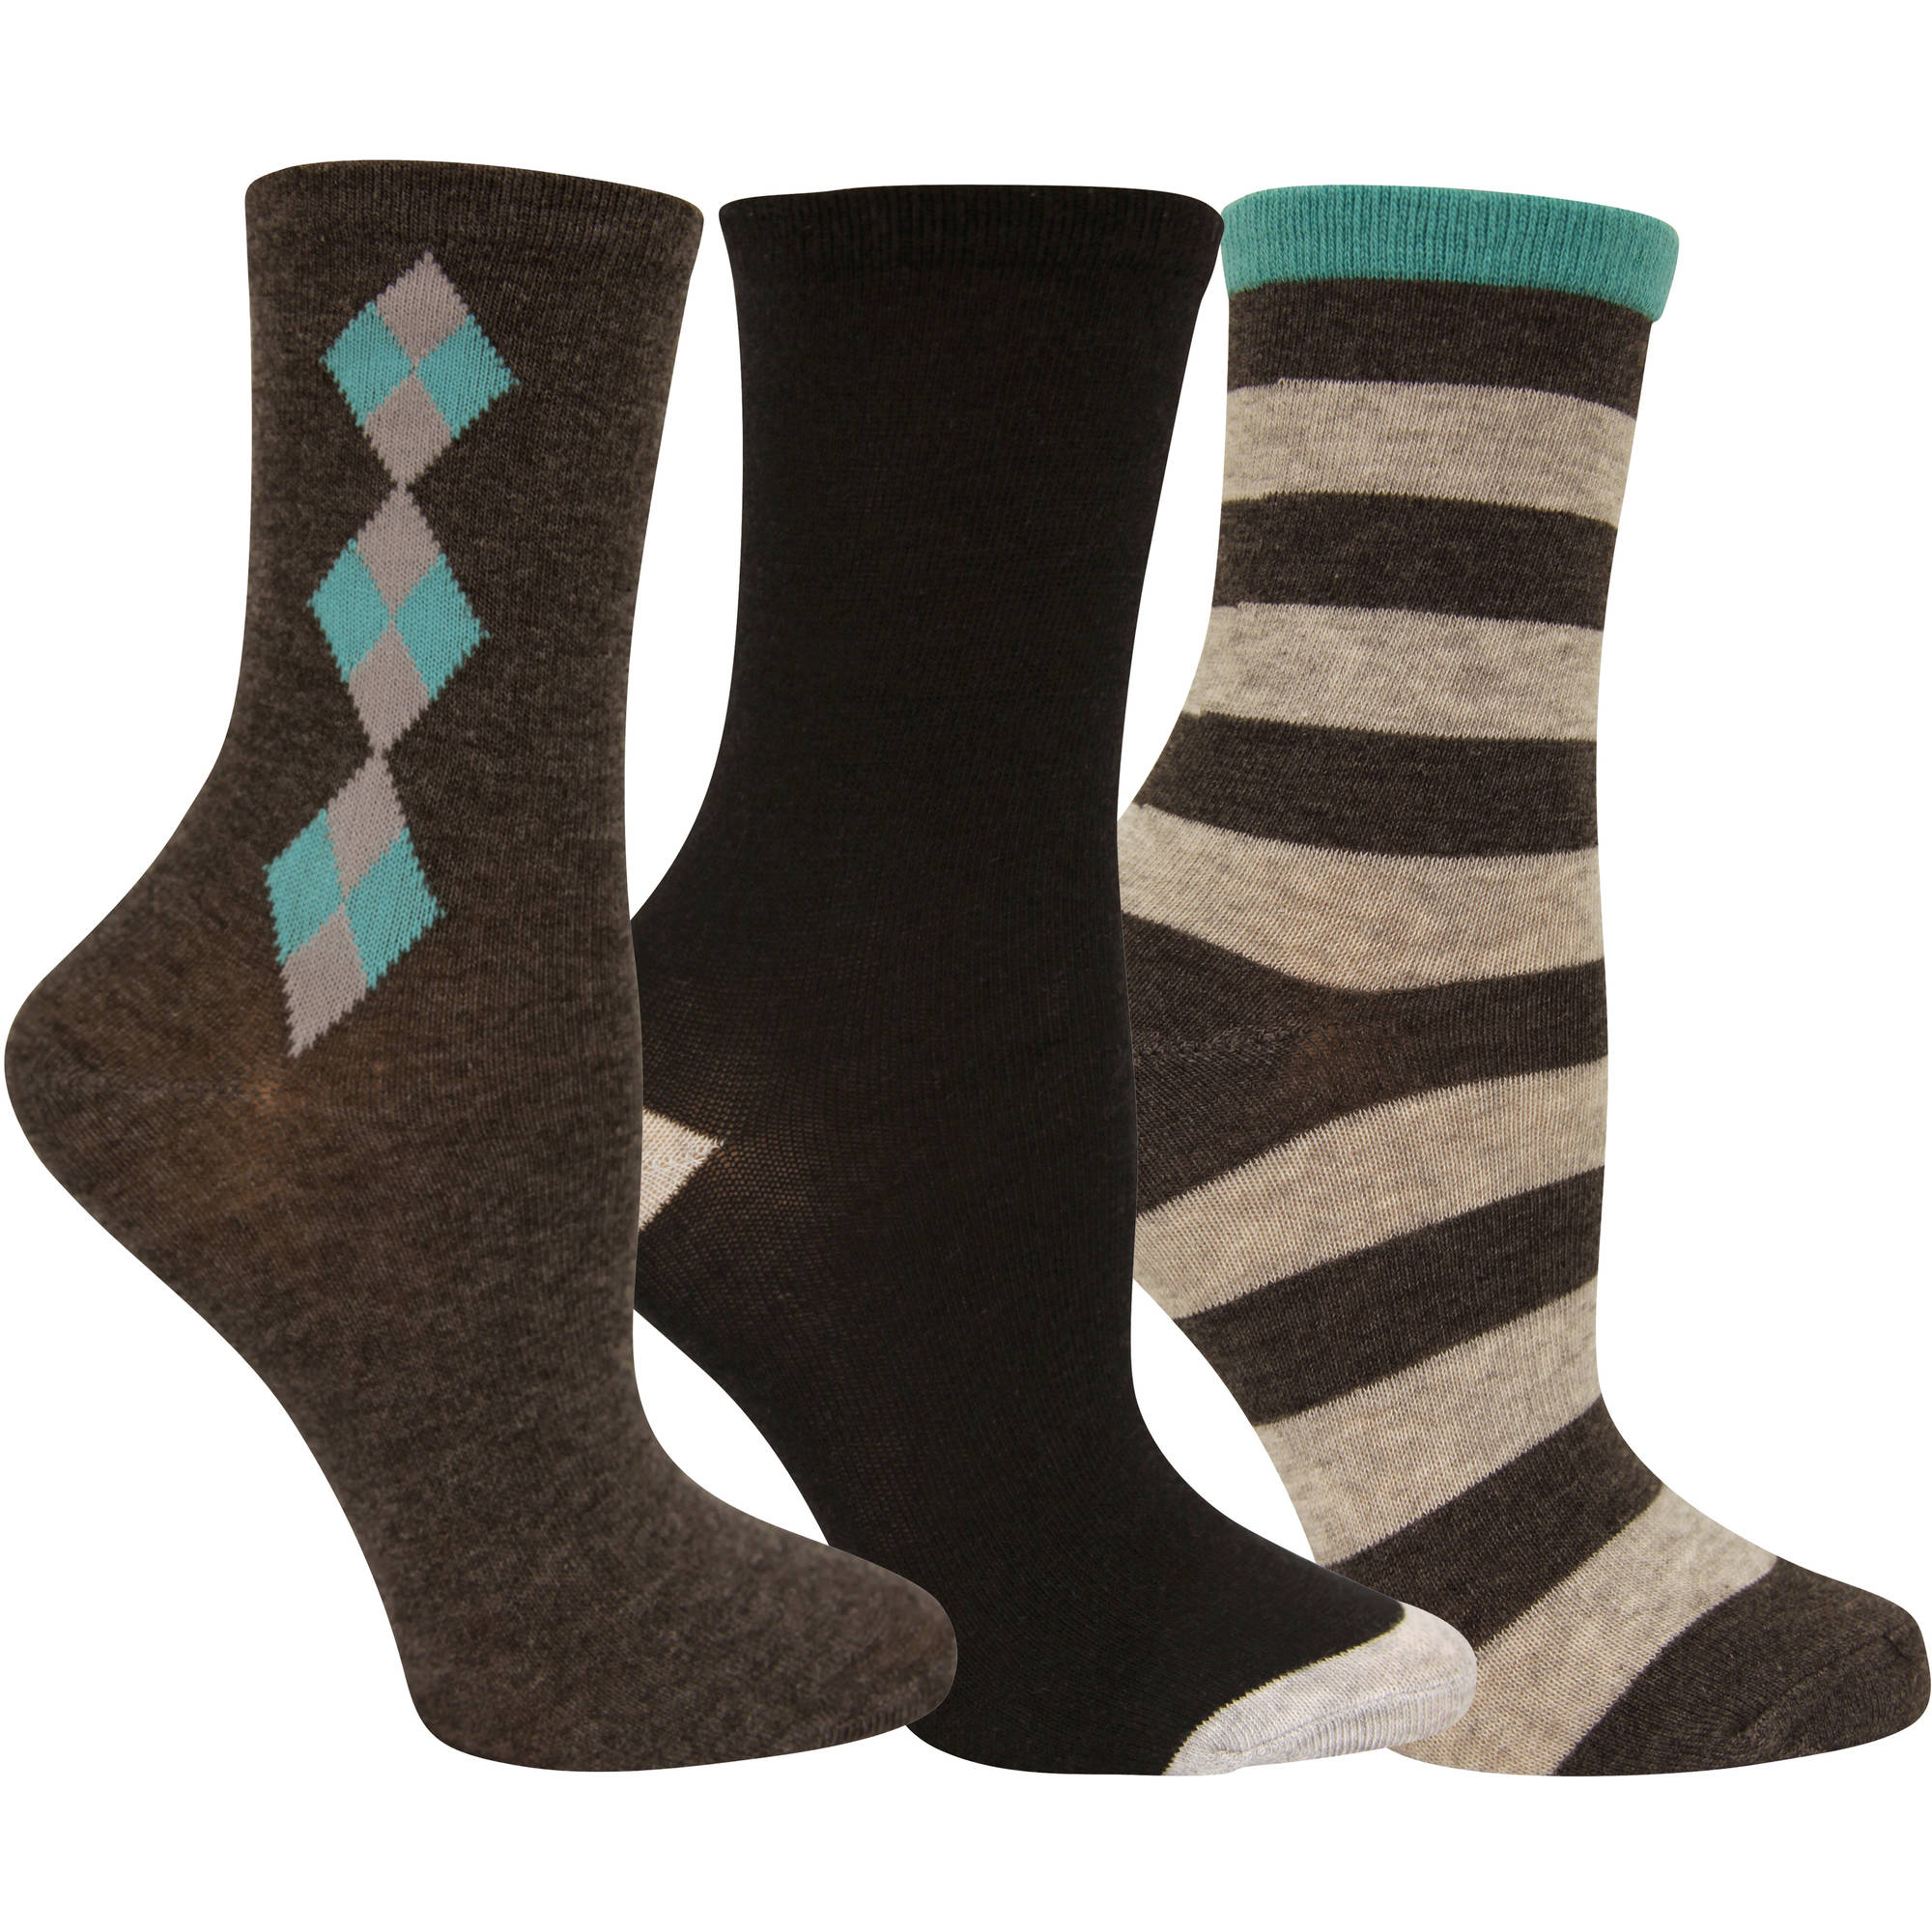 Faded Glory Womens Argyle Assorted Crew Socks - 3 Pack